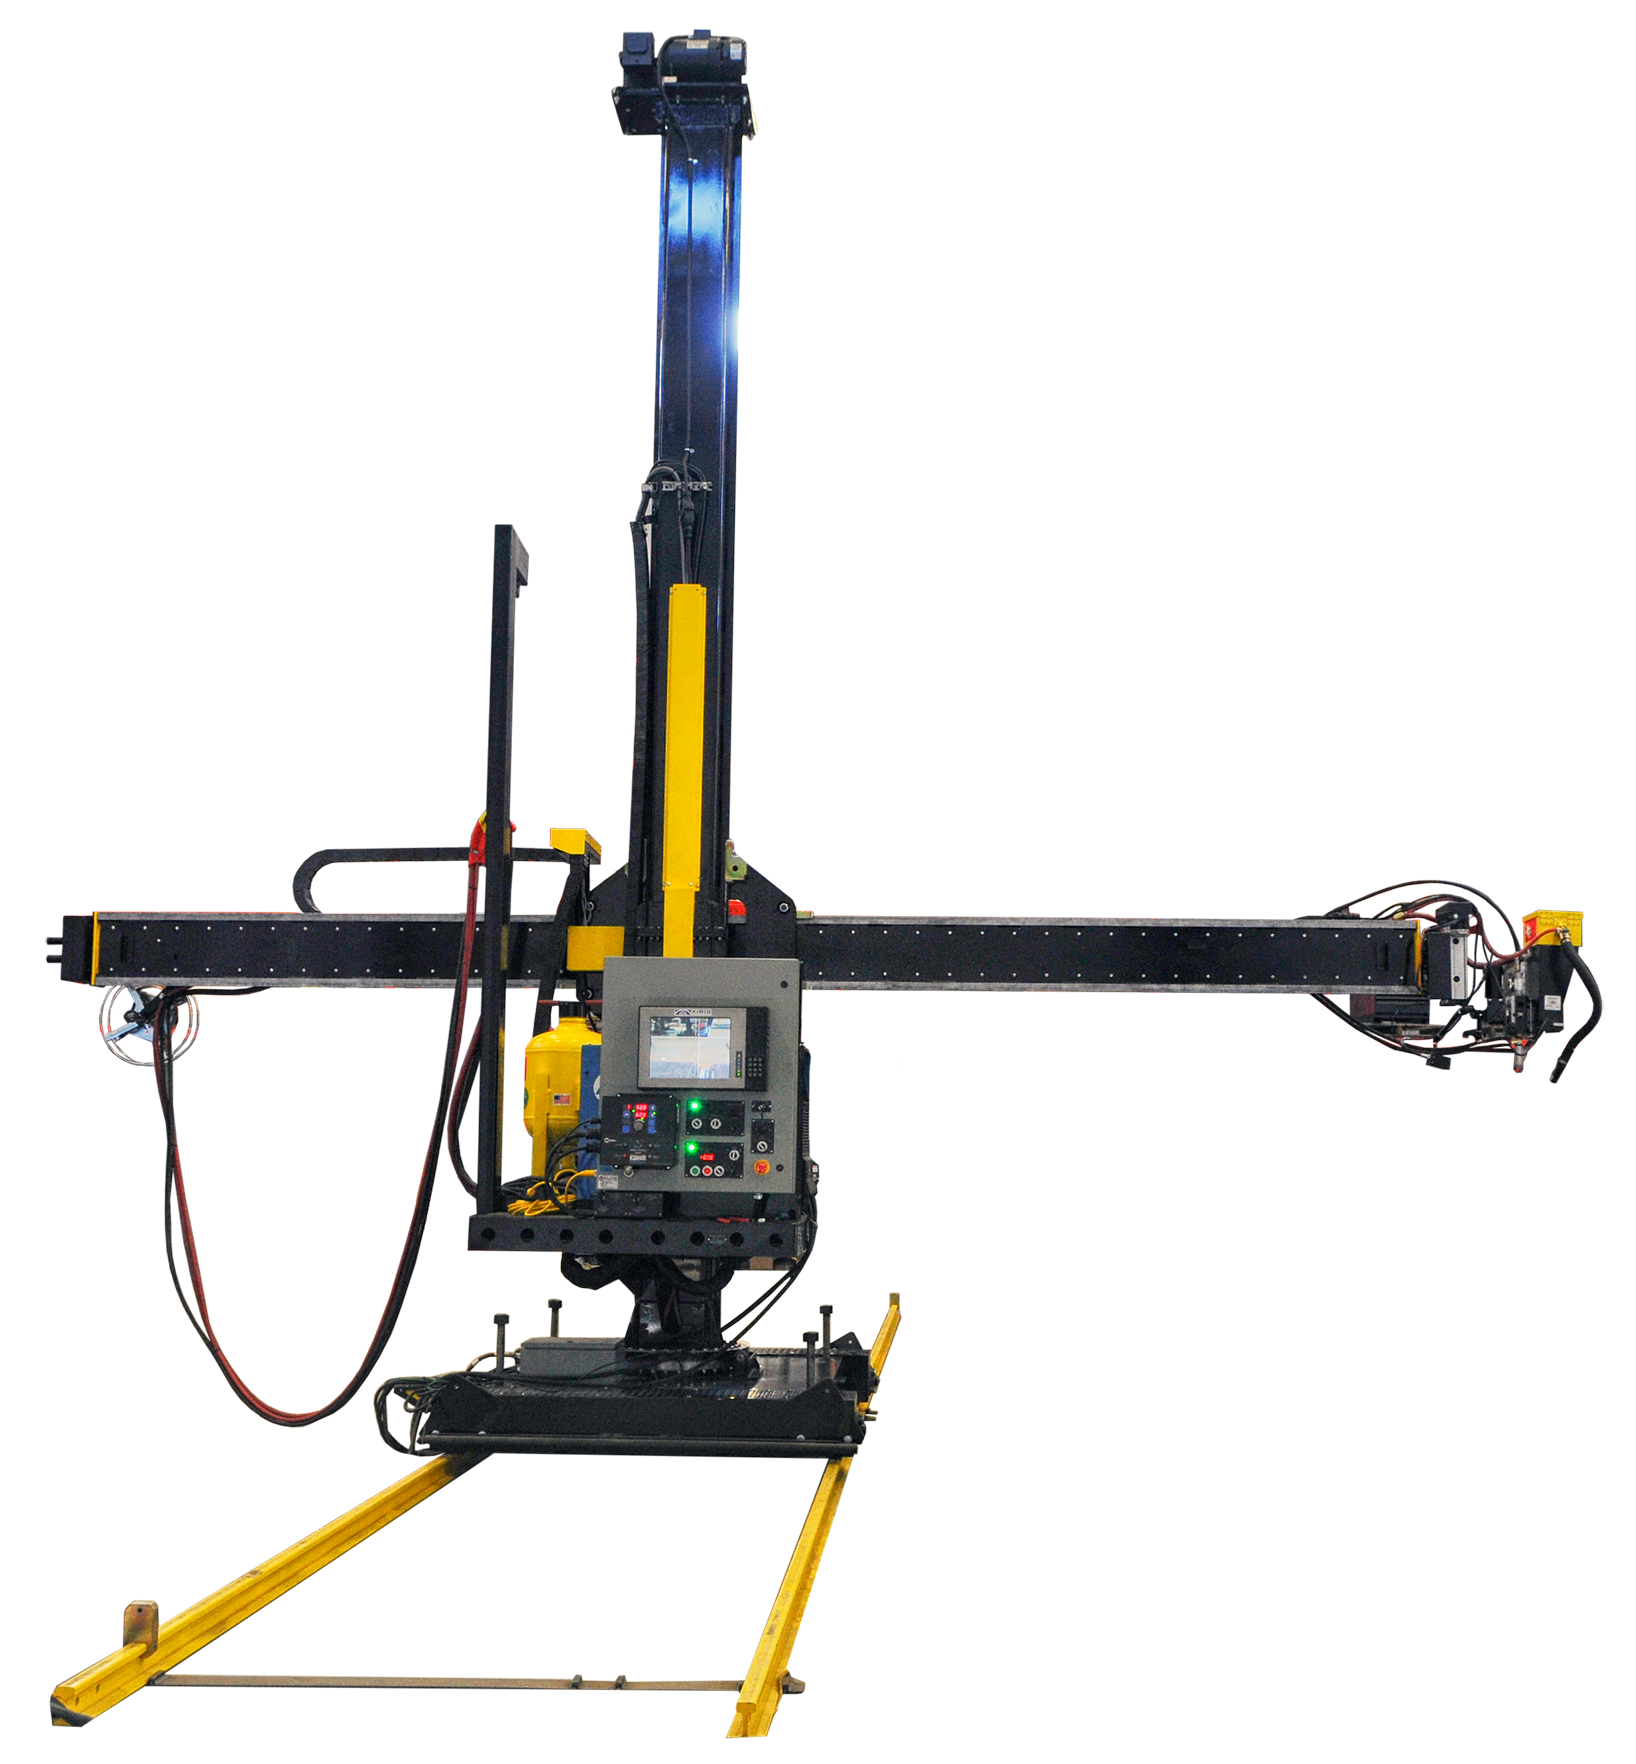 16 foot by 16 foot column and boom welding manipulator